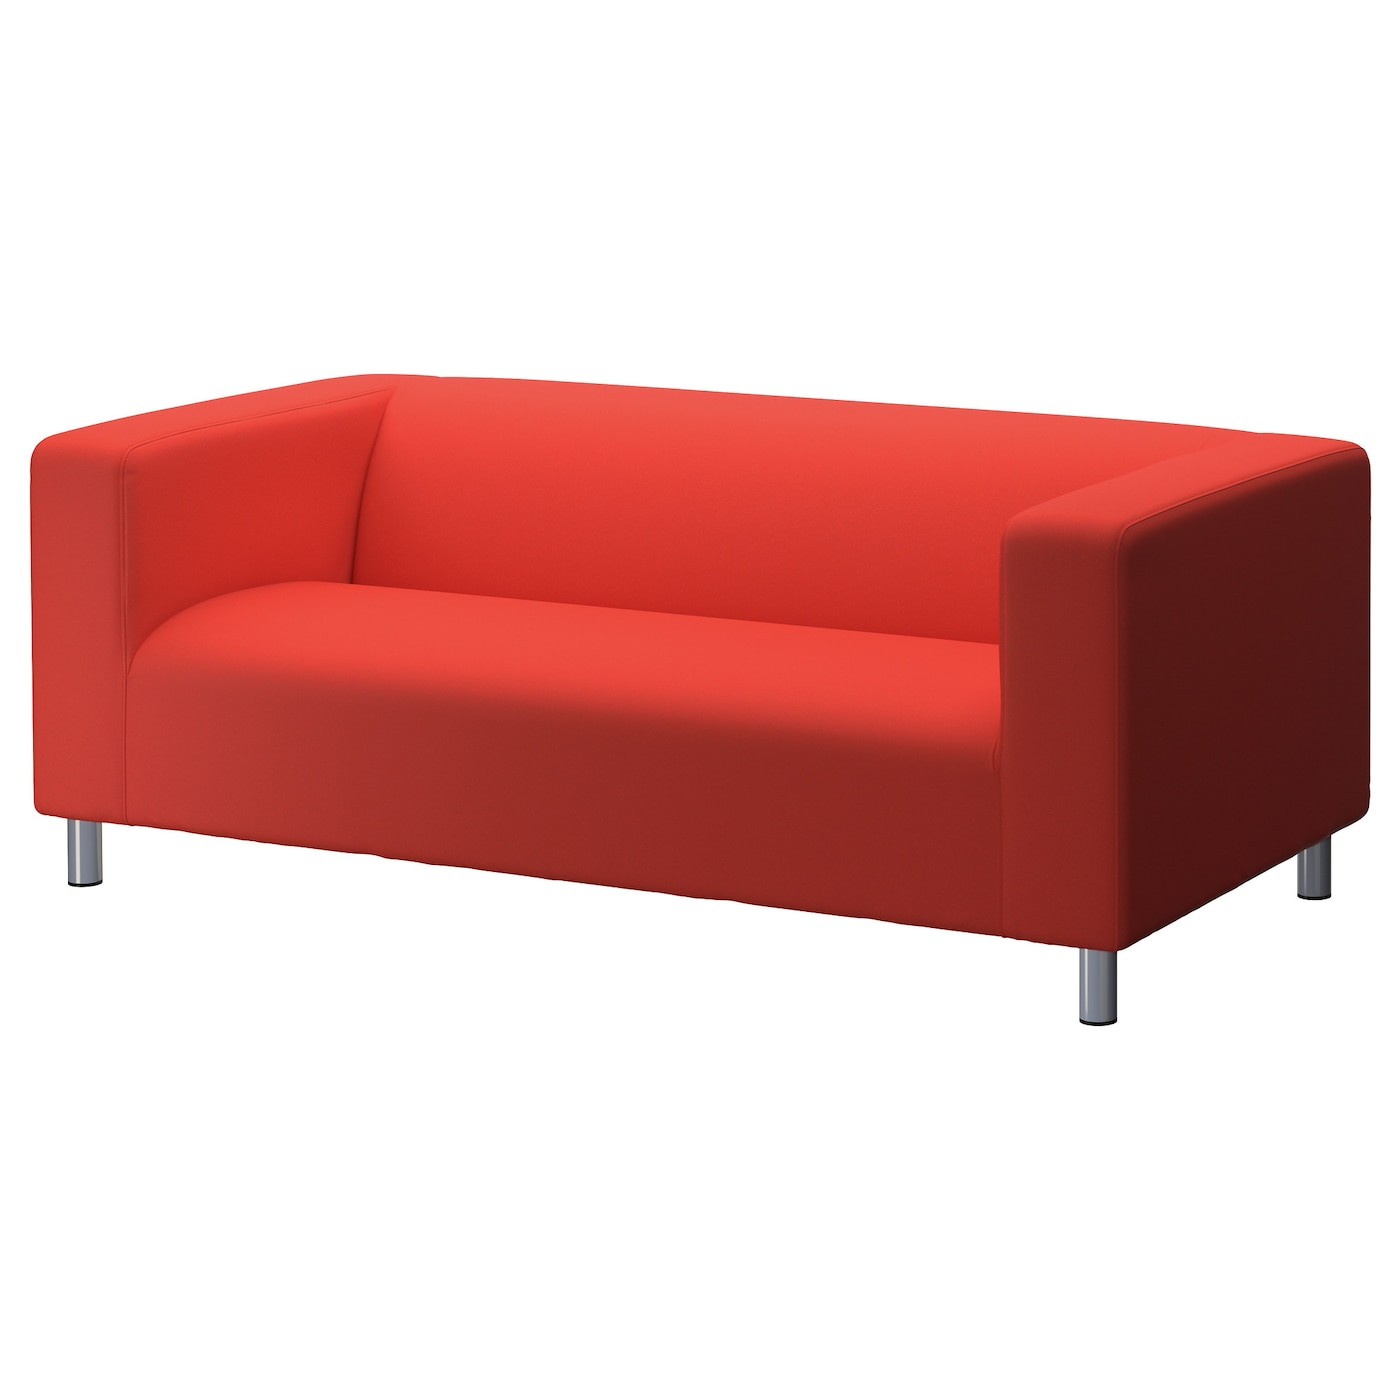 klippan two seat sofa flackarp red orange ikea. Black Bedroom Furniture Sets. Home Design Ideas